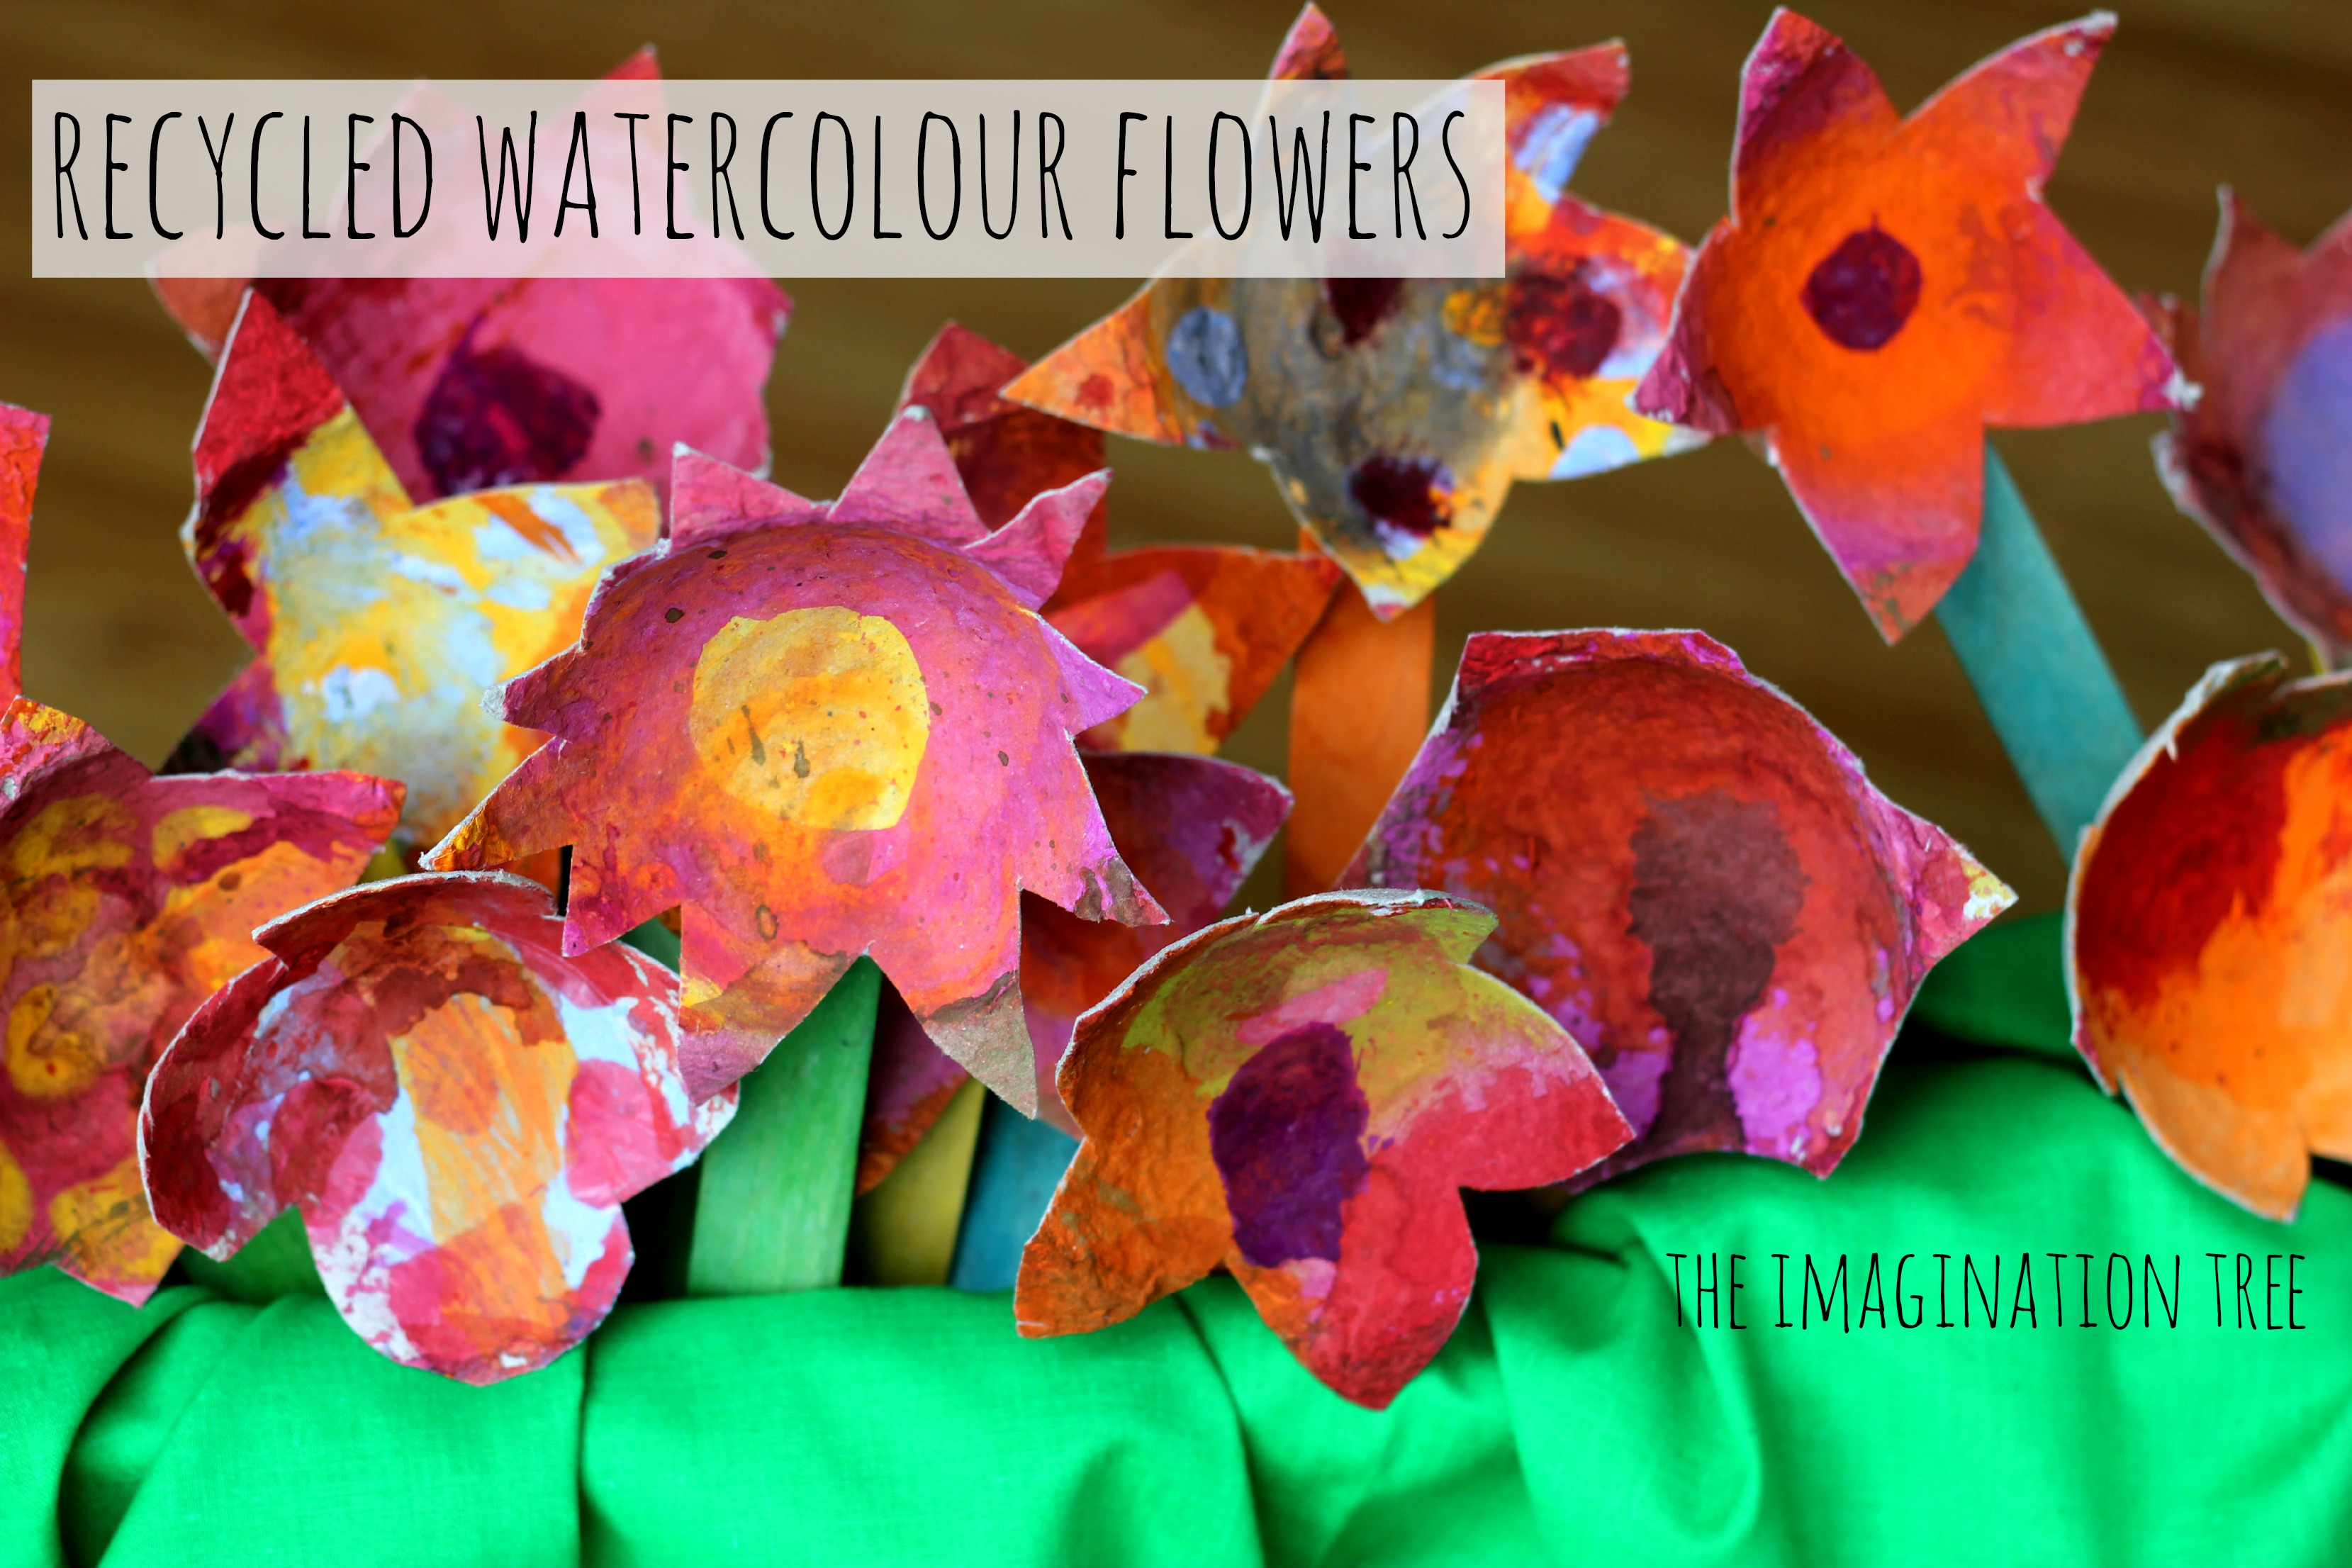 Painted fruit box flowers the imagination tree recycled watercolour flower craft mightylinksfo